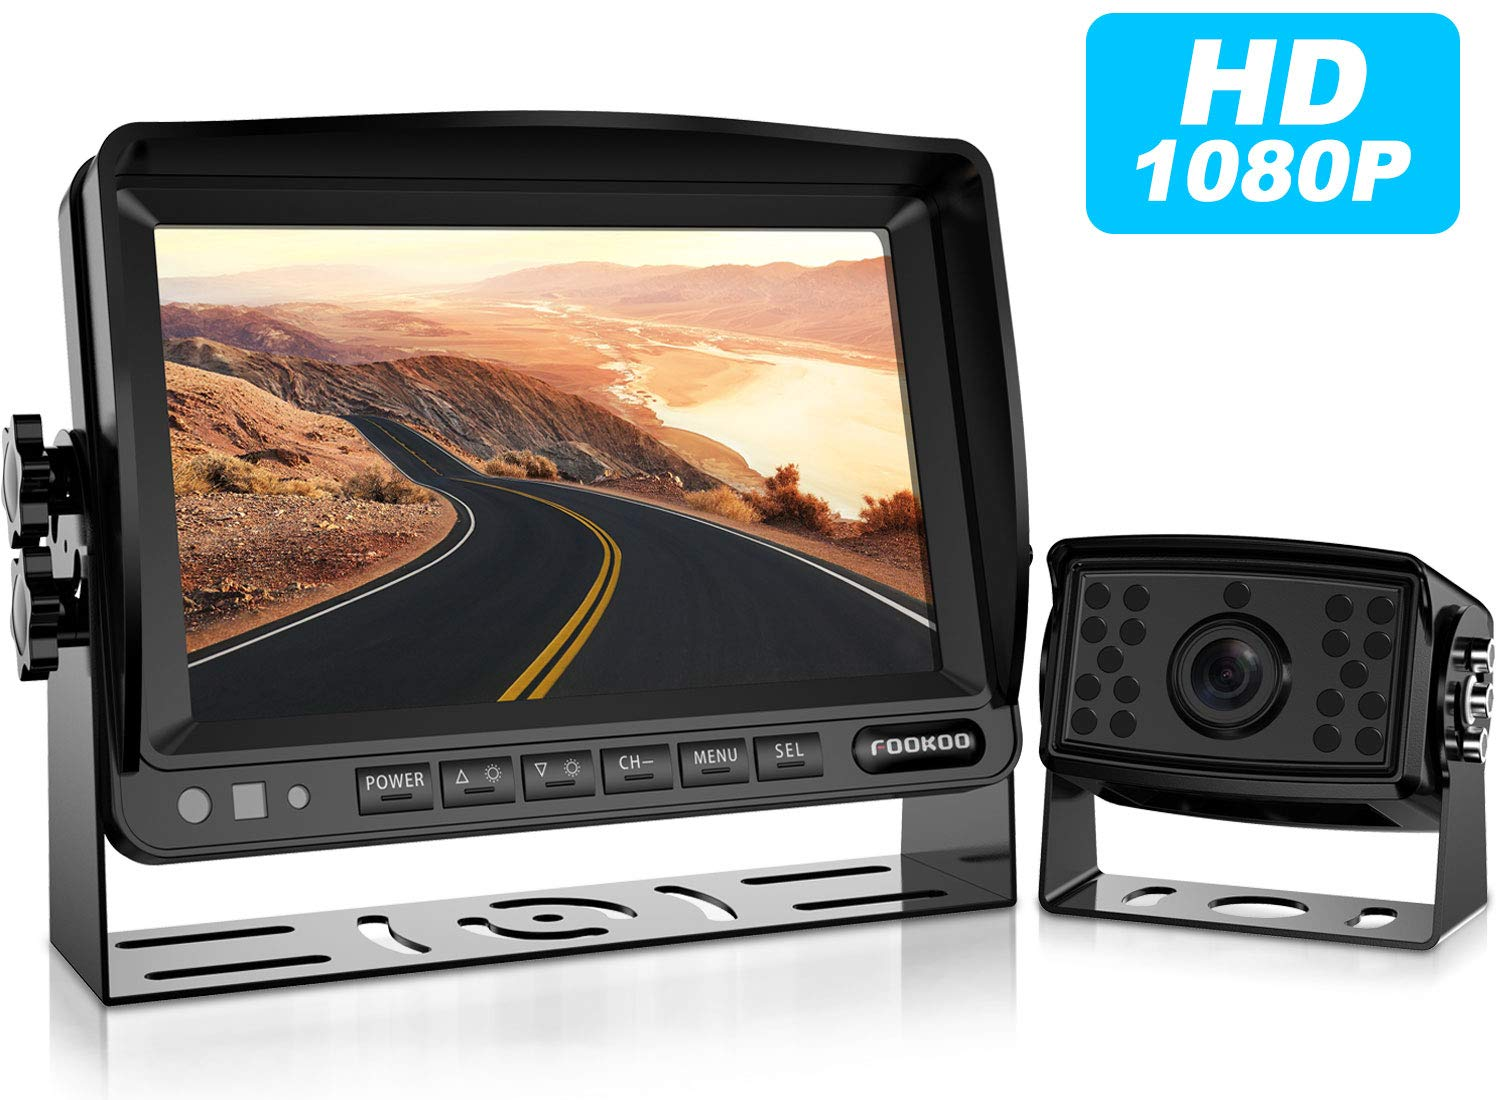 HD Backup Camera System Kit,7/'/'1080P Reversing Monitor+IP69 Waterproof Rear View Camera,Sharp CCD Chip 100/% Not Wash Up,Truck//Semi-Trailer//Box Truck//RV FHD2-Wired FOOKOO